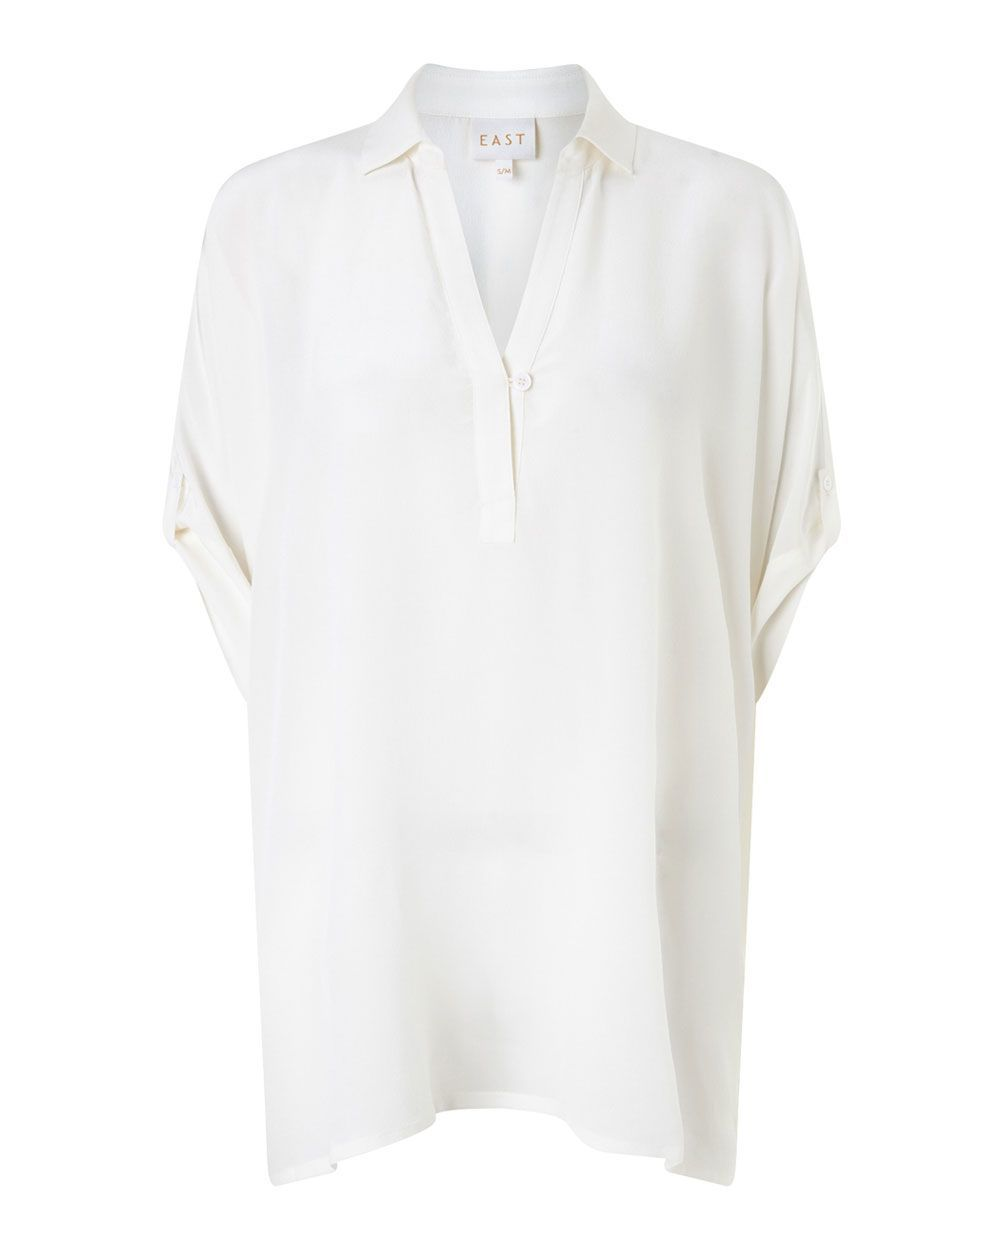 Oversized Silk Shirt, Pearl - neckline: shirt collar/peter pan/zip with opening; sleeve style: dolman/batwing; pattern: plain; length: below the bottom; style: shirt; predominant colour: ivory/cream; occasions: casual; fibres: silk - 100%; fit: loose; sleeve length: short sleeve; texture group: silky - light; pattern type: fabric; season: a/w 2015; wardrobe: basic